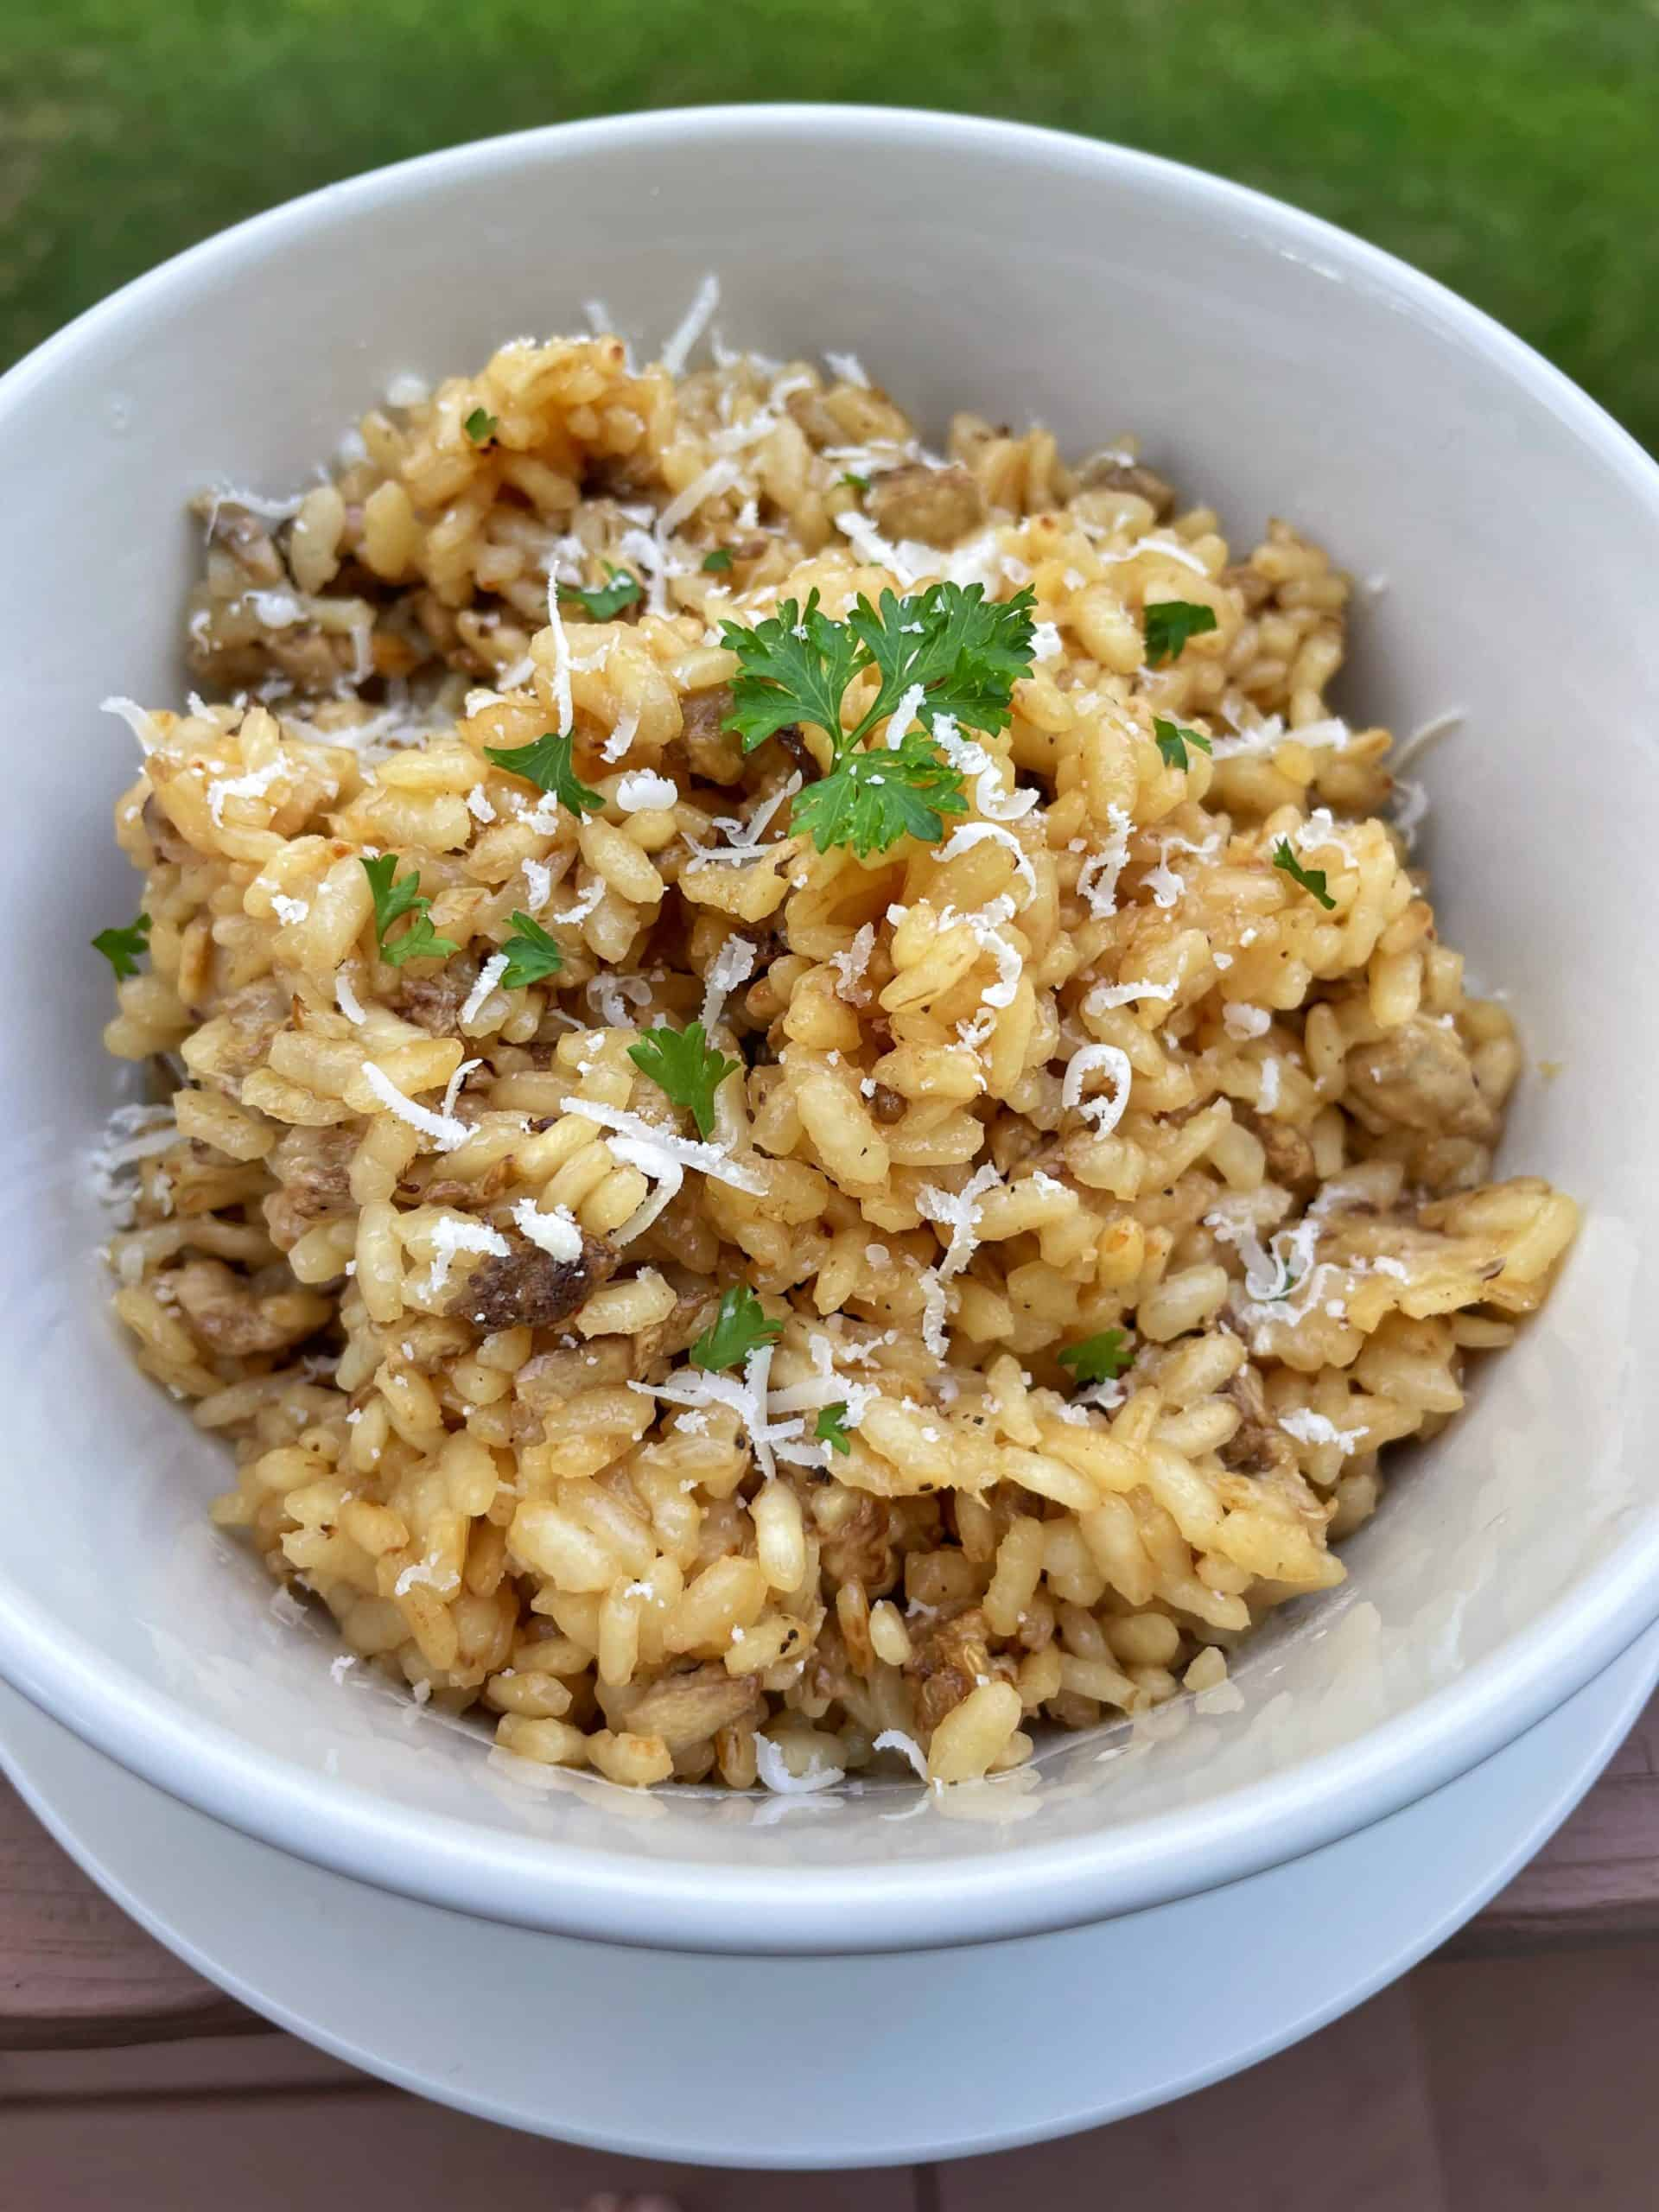 Lion's Mane Mushroom Risotto in a bowl.